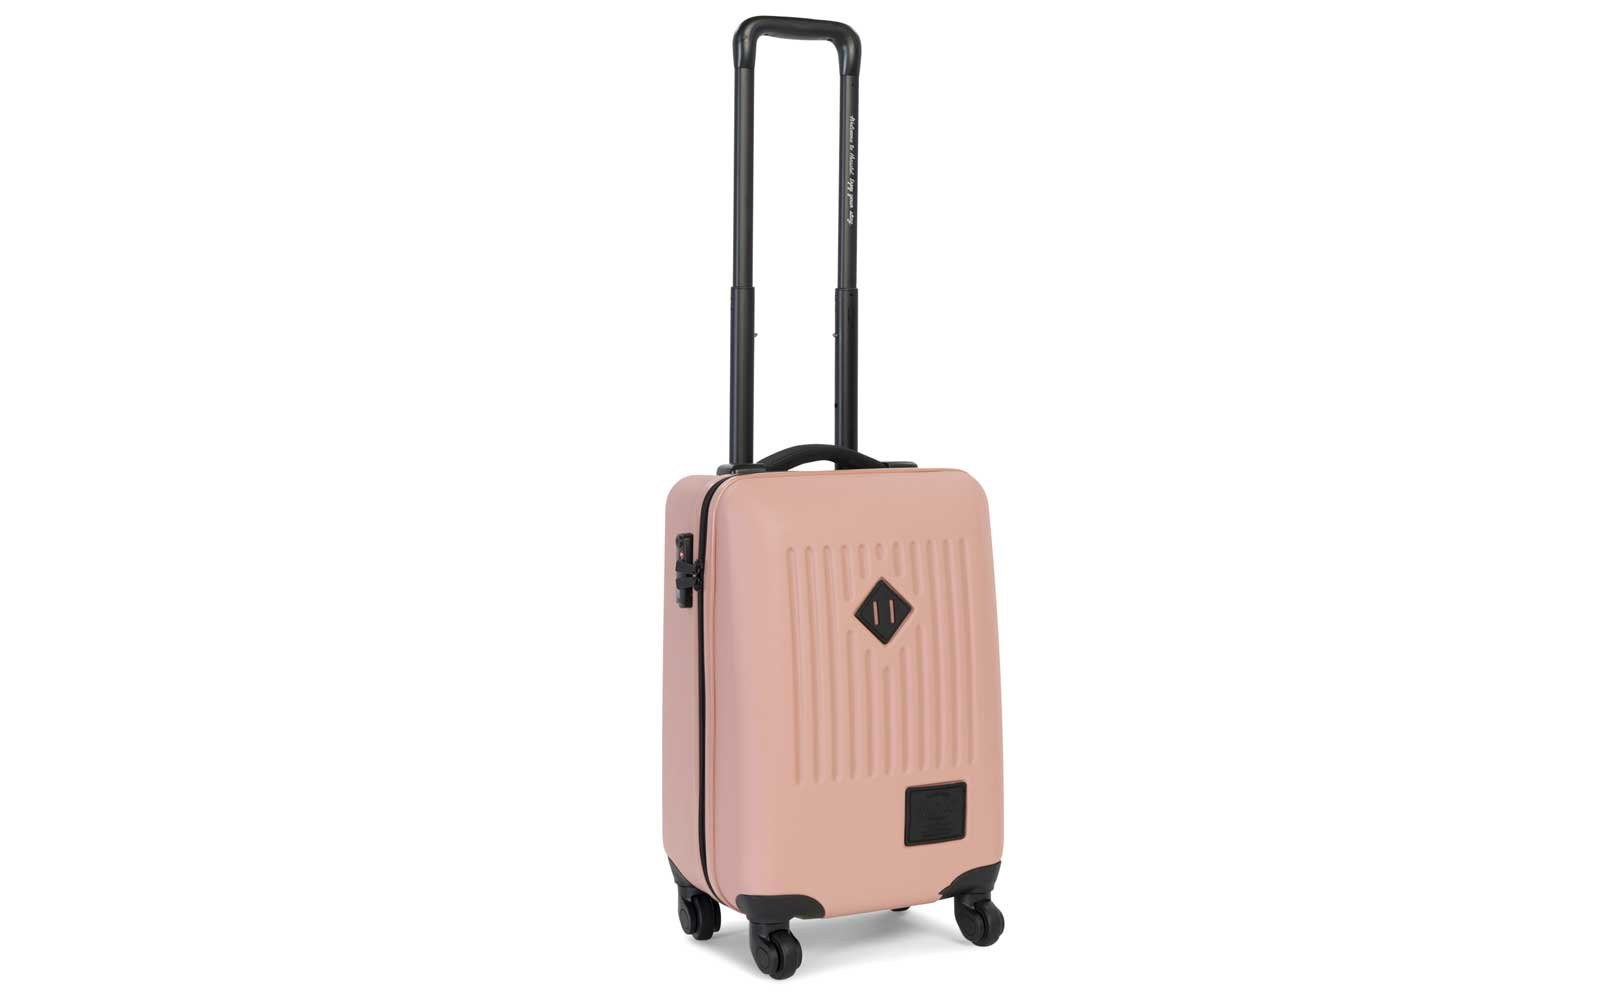 Herschel Supply Co. Hardshell Carry-on Suitcase in ash rose